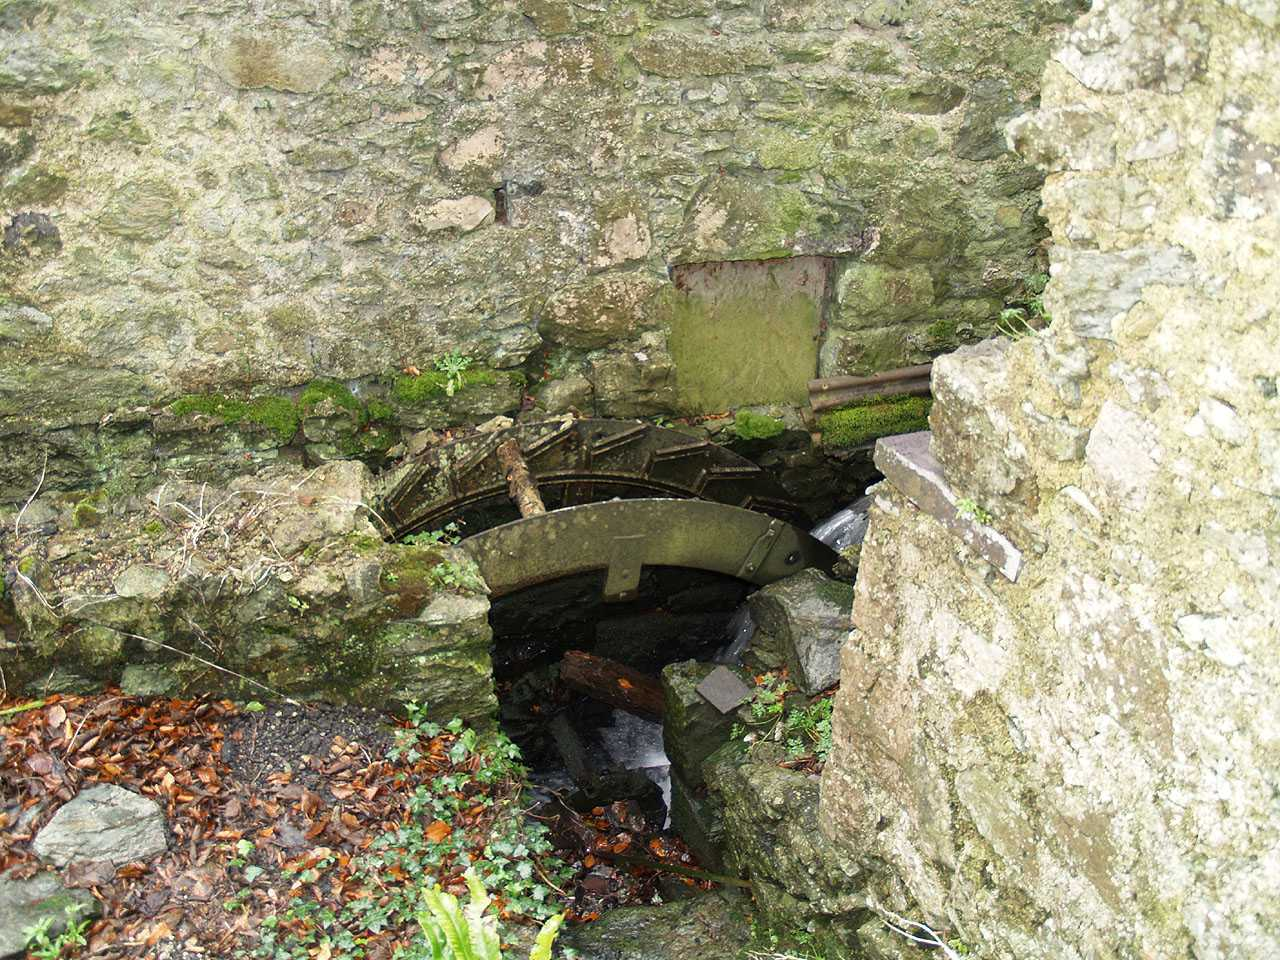 Anglesey, Llangefni Water Mill - the water wheel minus the wood blades